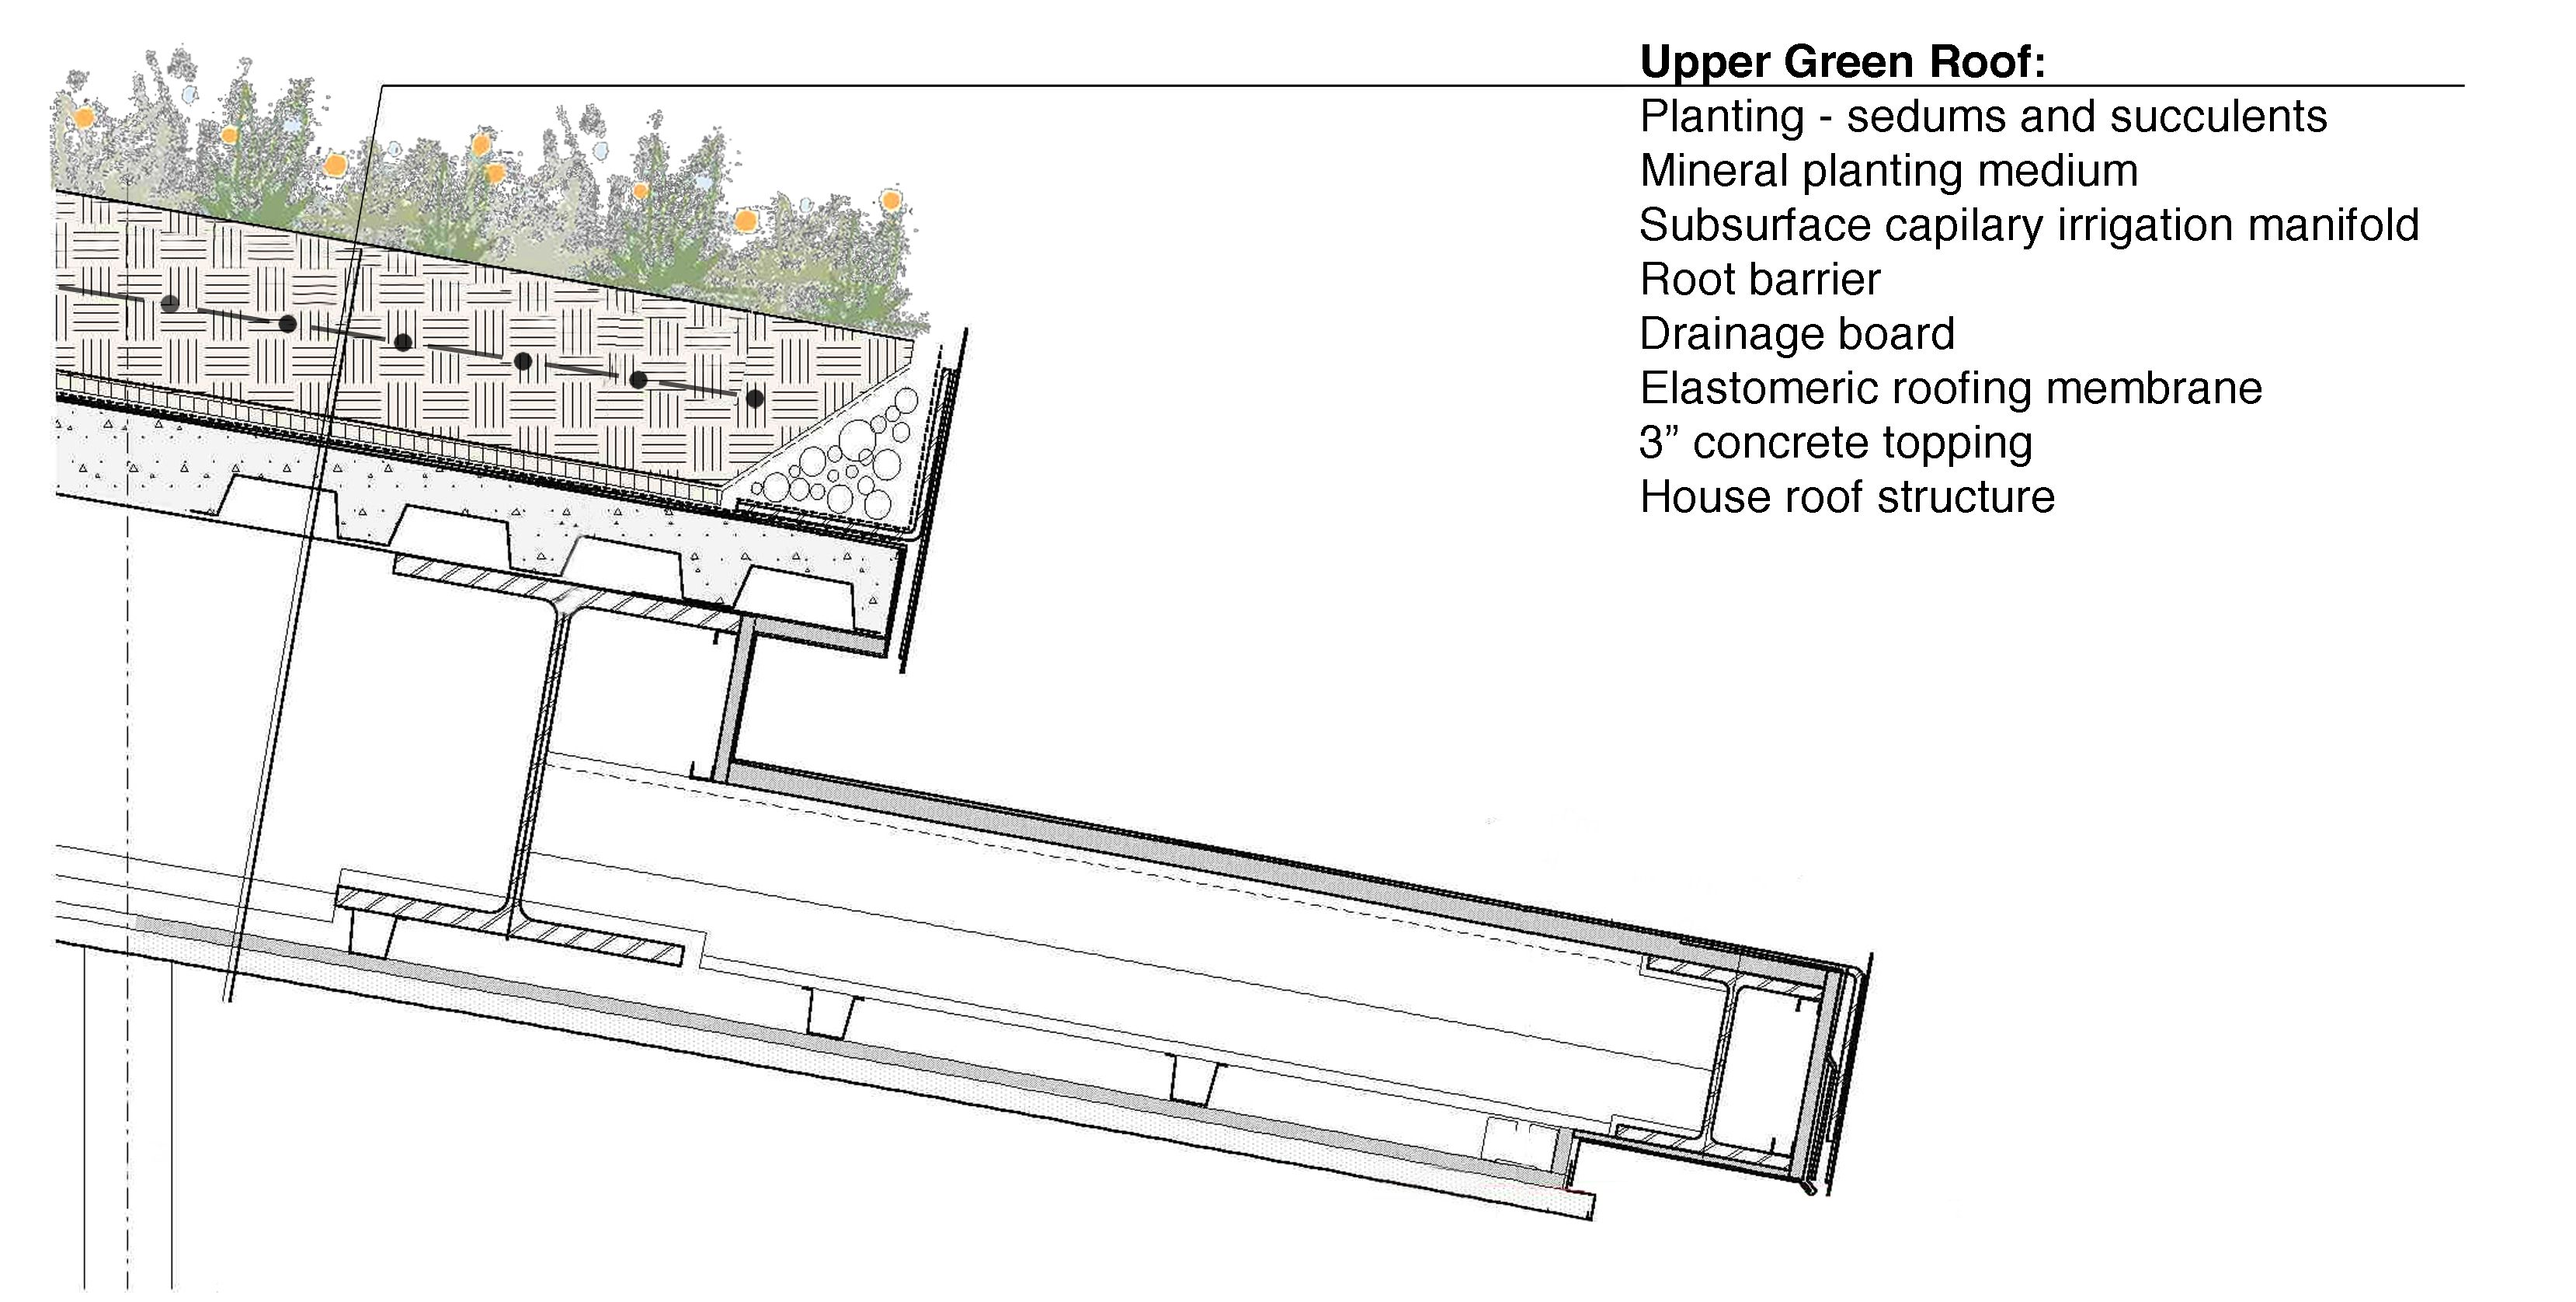 green roof section - Google 搜索 | Green roof, Green roof ...